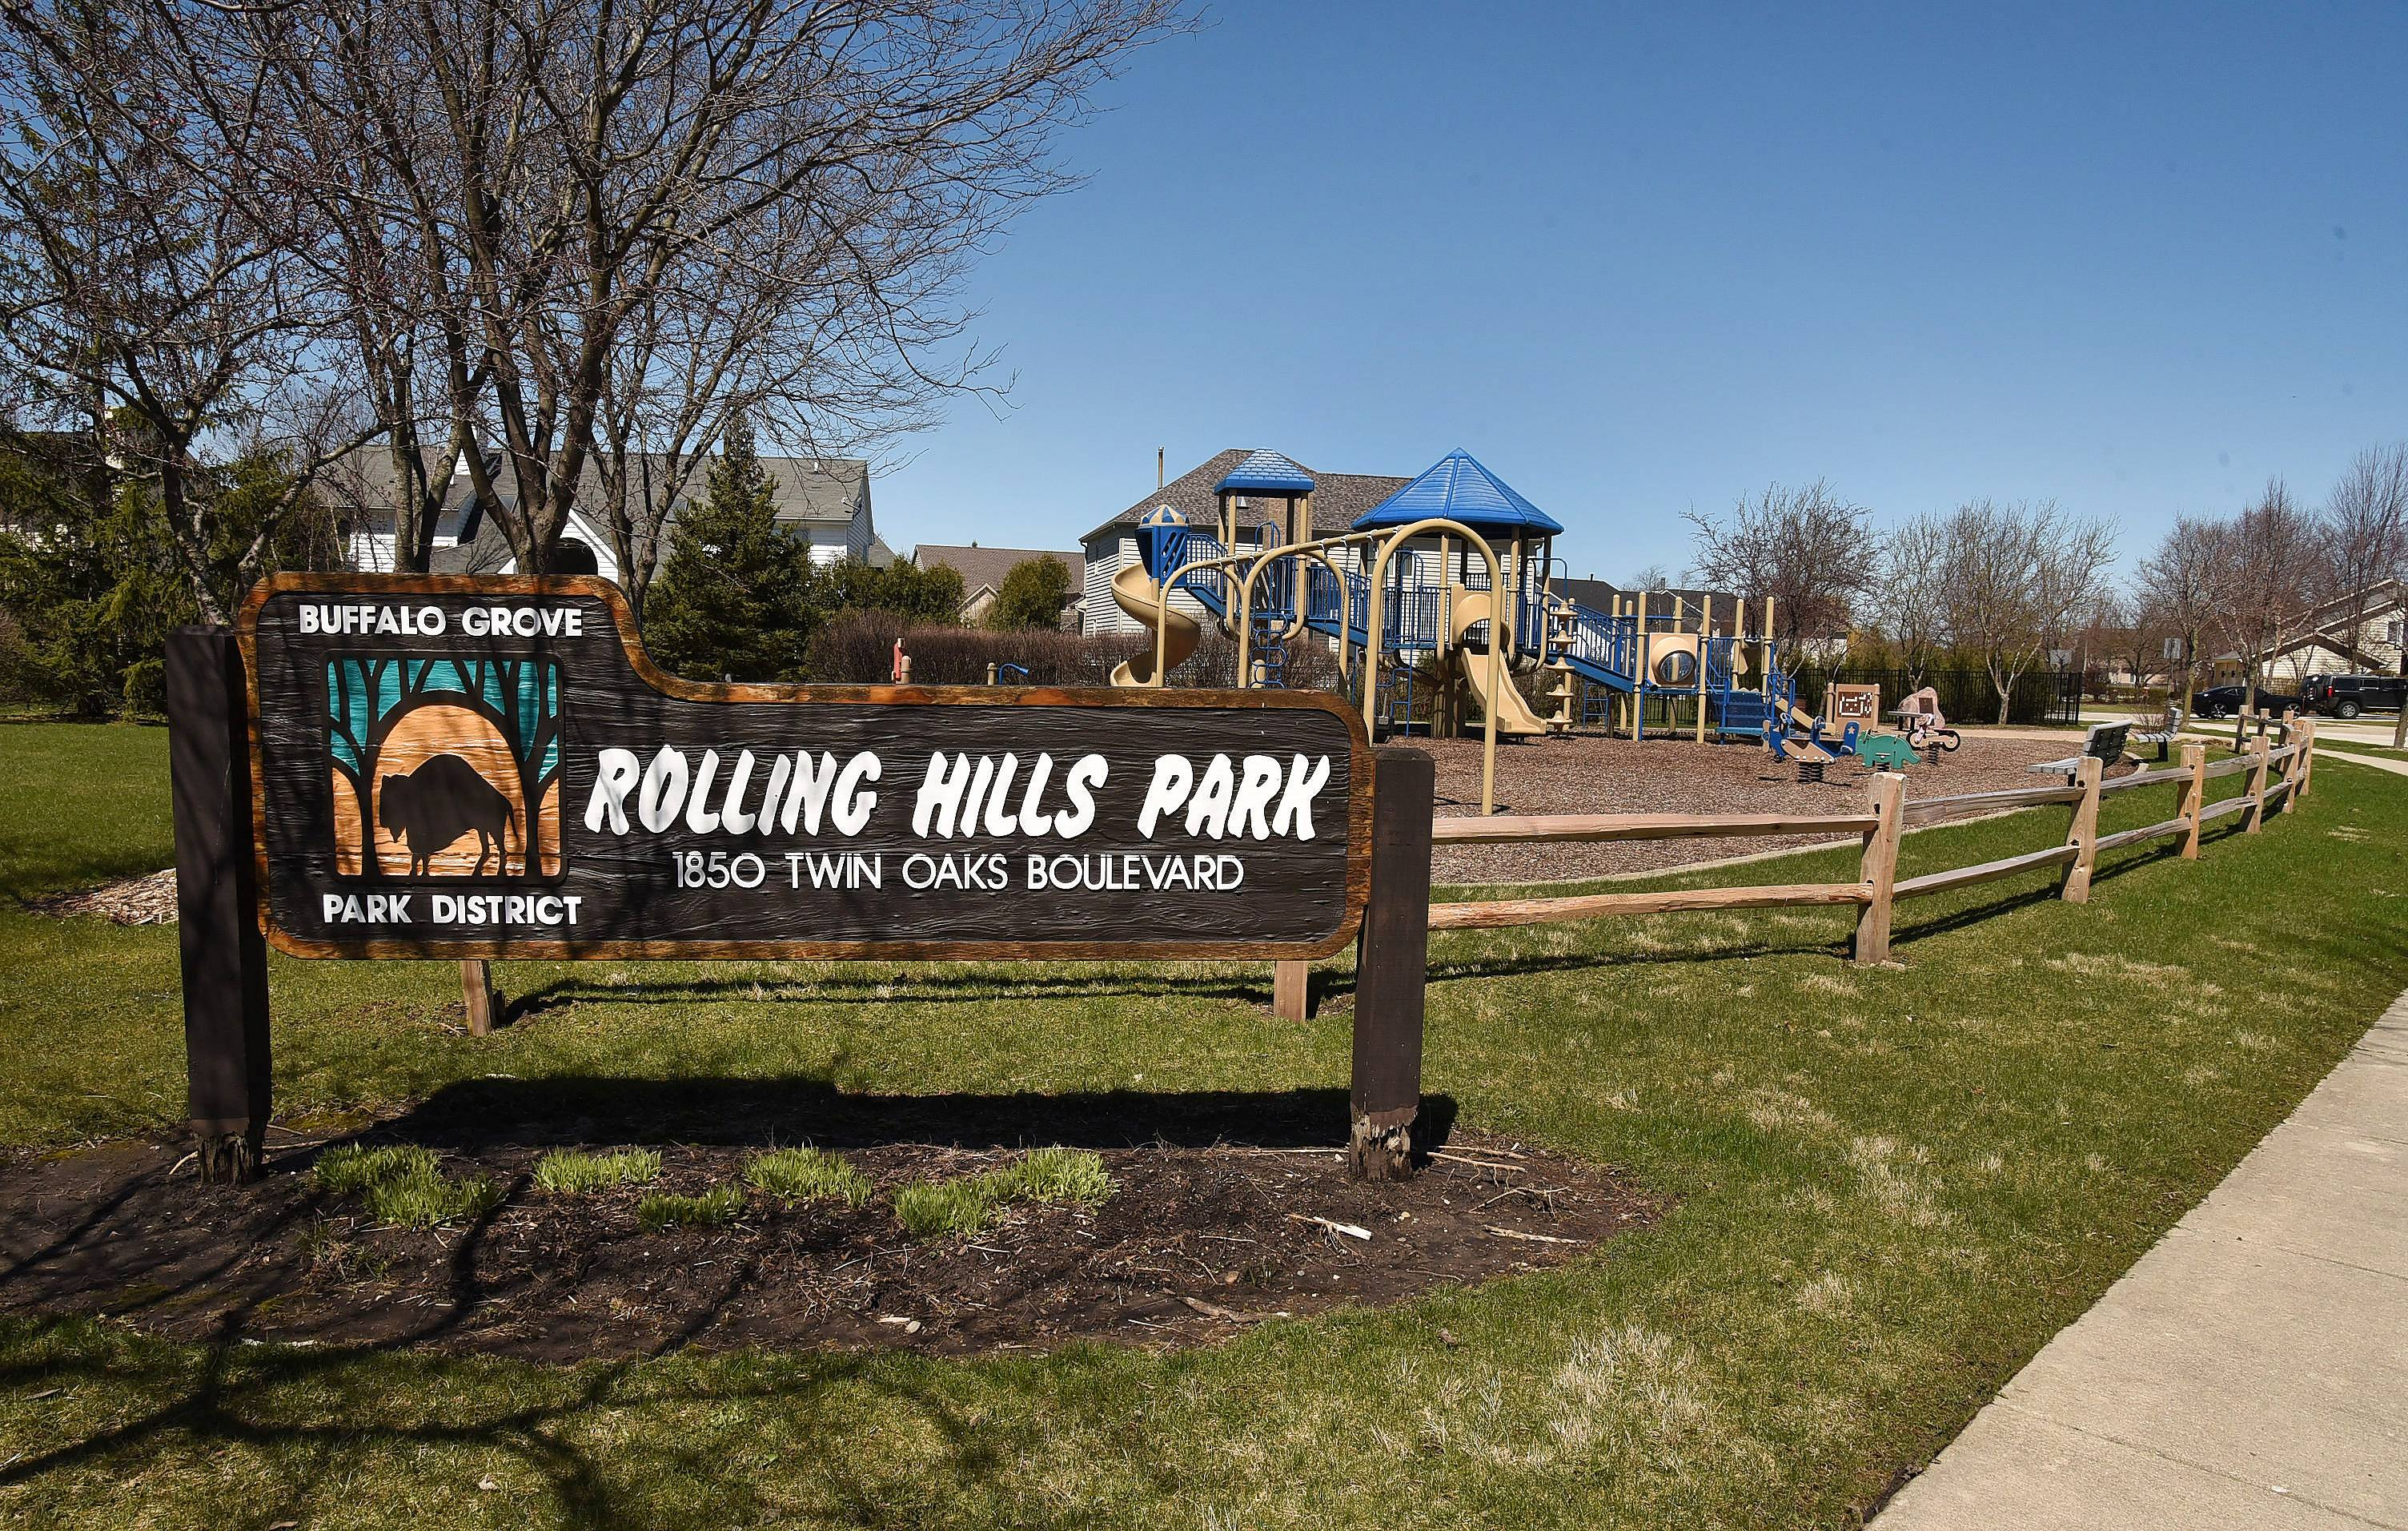 Rolling Hills Park is located along Twin Oaks Boulevard at the entrance to the Rolling Hills subdivision.